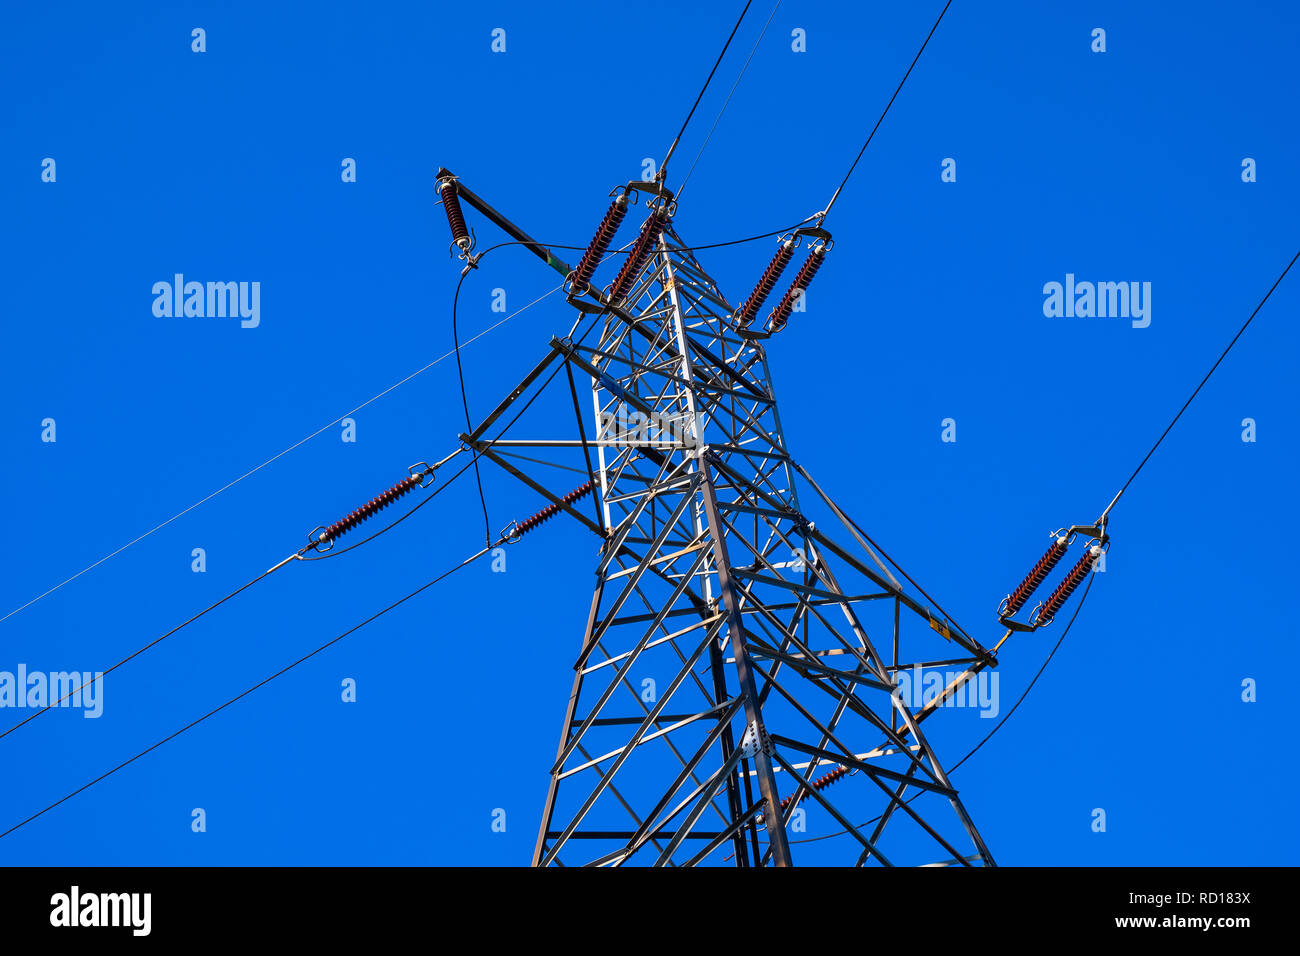 High voltage transmission line supported by the metal construction of a high-voltage electric pole with power insulators and connectors on a deep blue - Stock Image